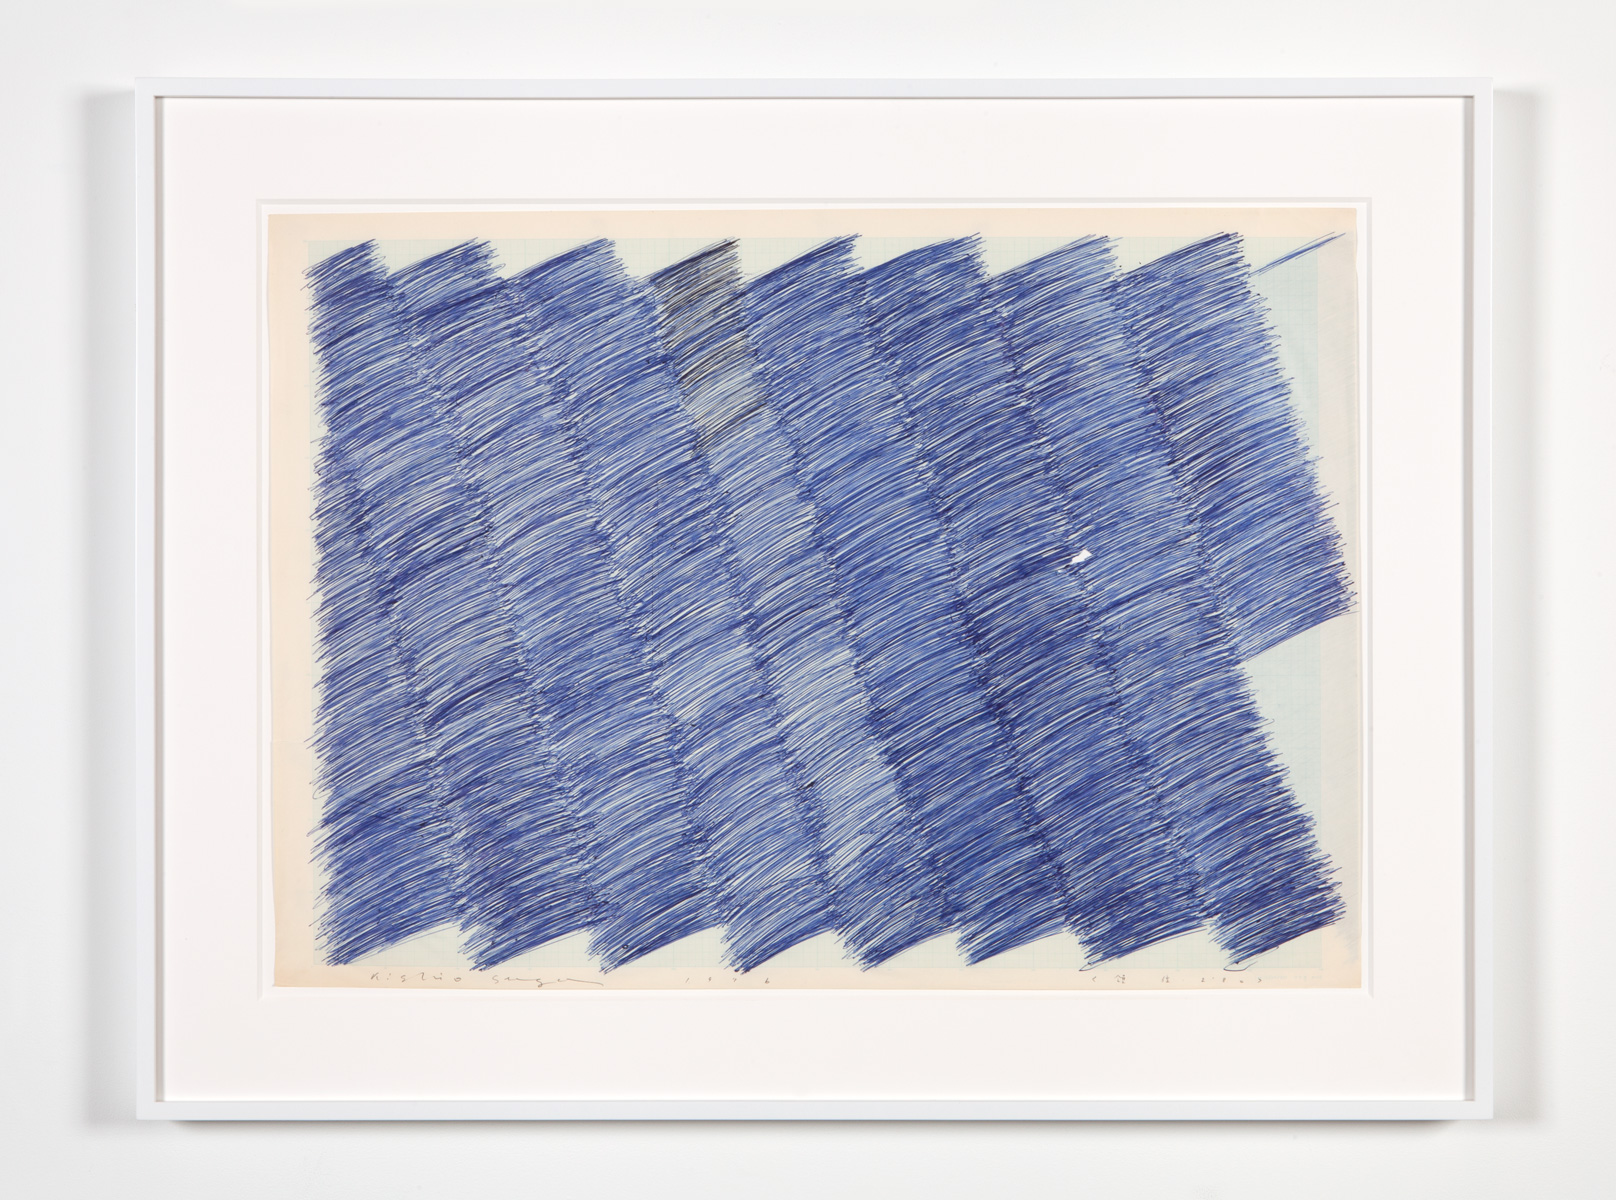 Quantity of Territory , 1976 Ball-point pen on paper 21 1/8 x 29 3/4 inches 53.7 x 75.6 centimeters